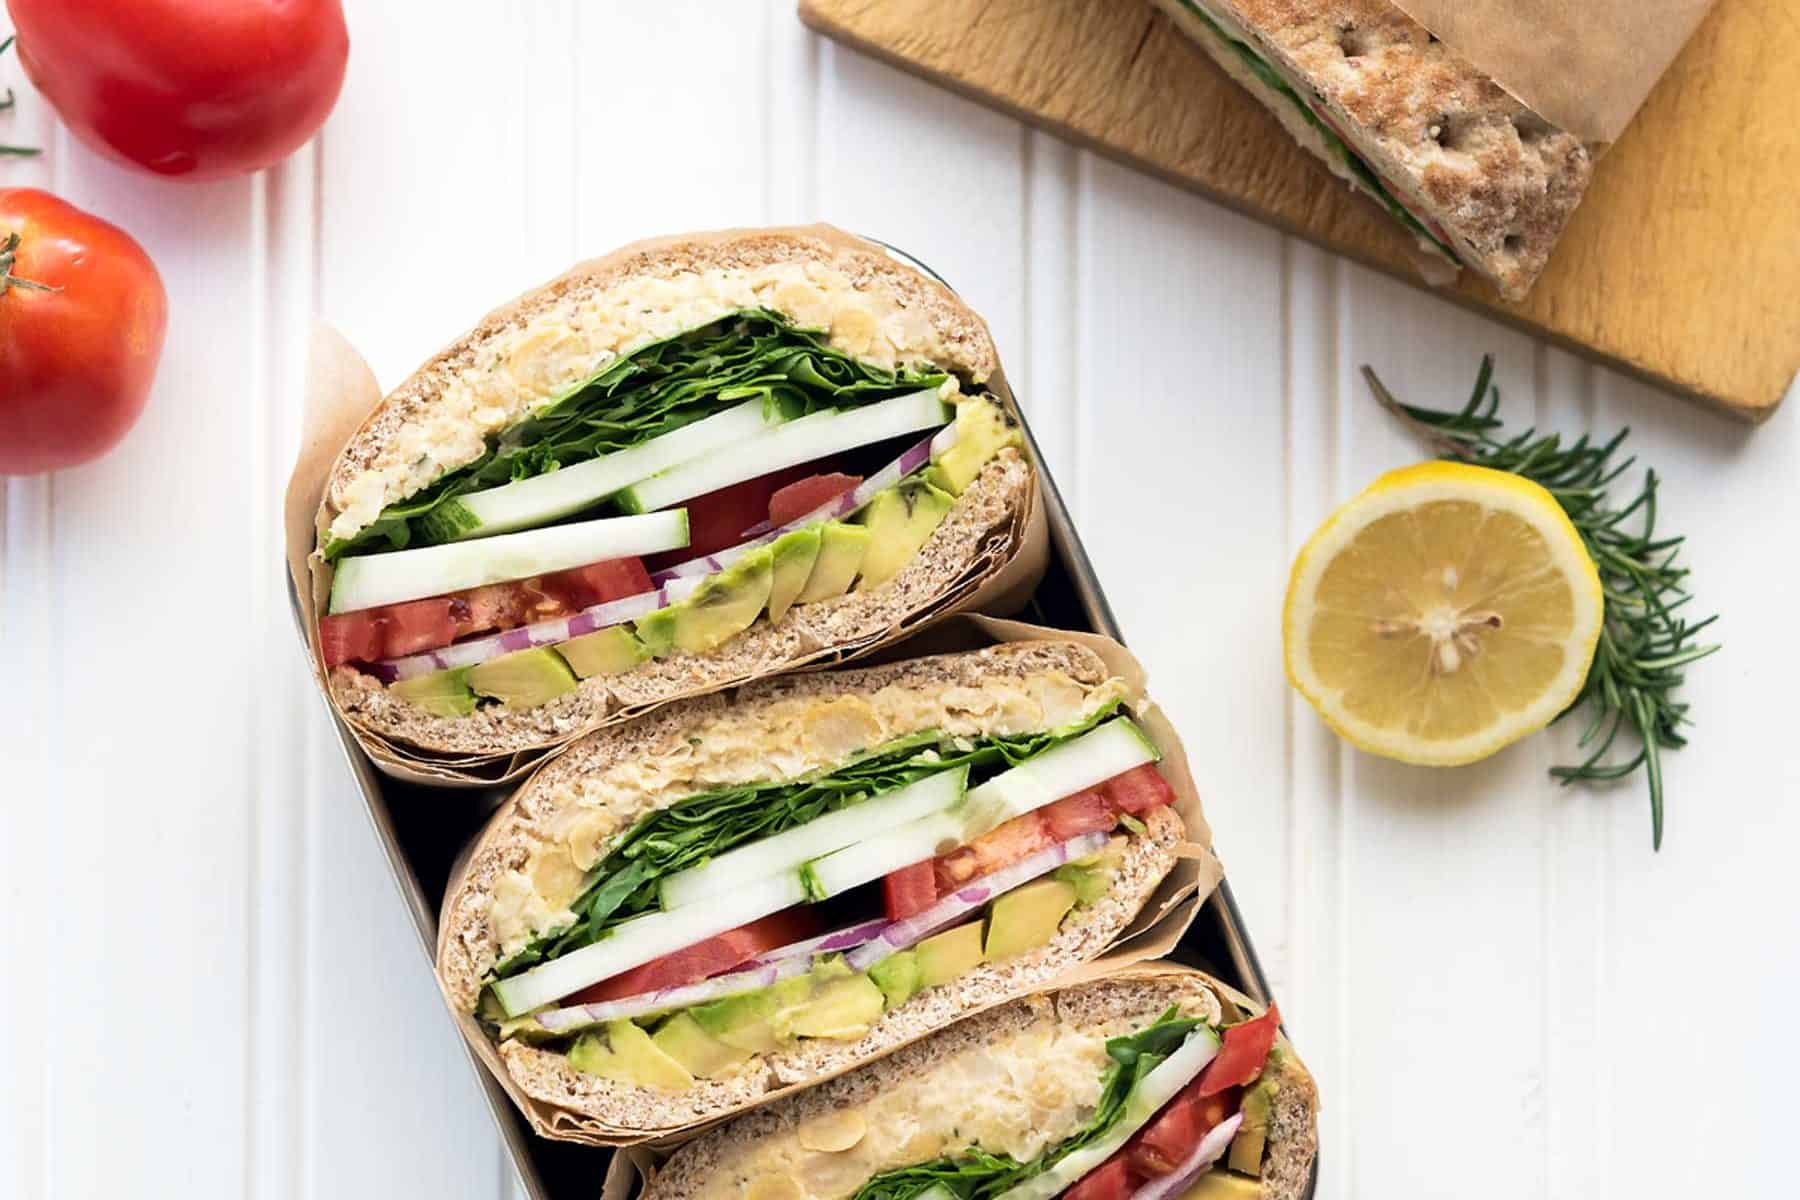 Sliced rosemary chickpea salad sandwiches in a lunch container on a white background